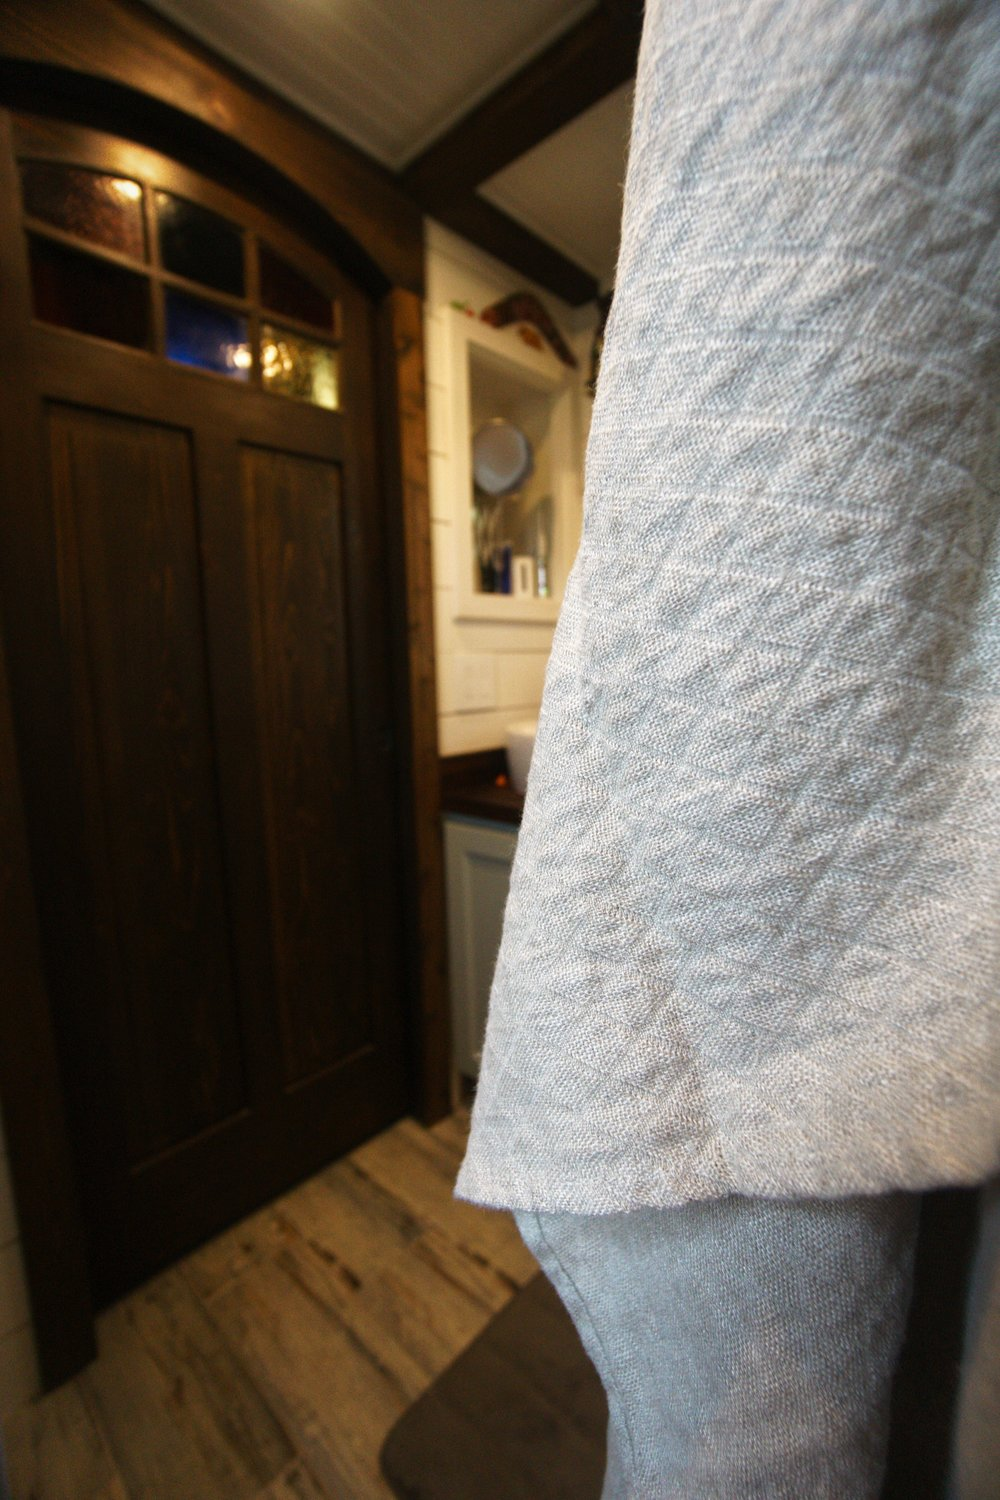 Tiny house tiny home tiny bathroom linen towels review space saving bathroom bathroom towels hooks goodlinens